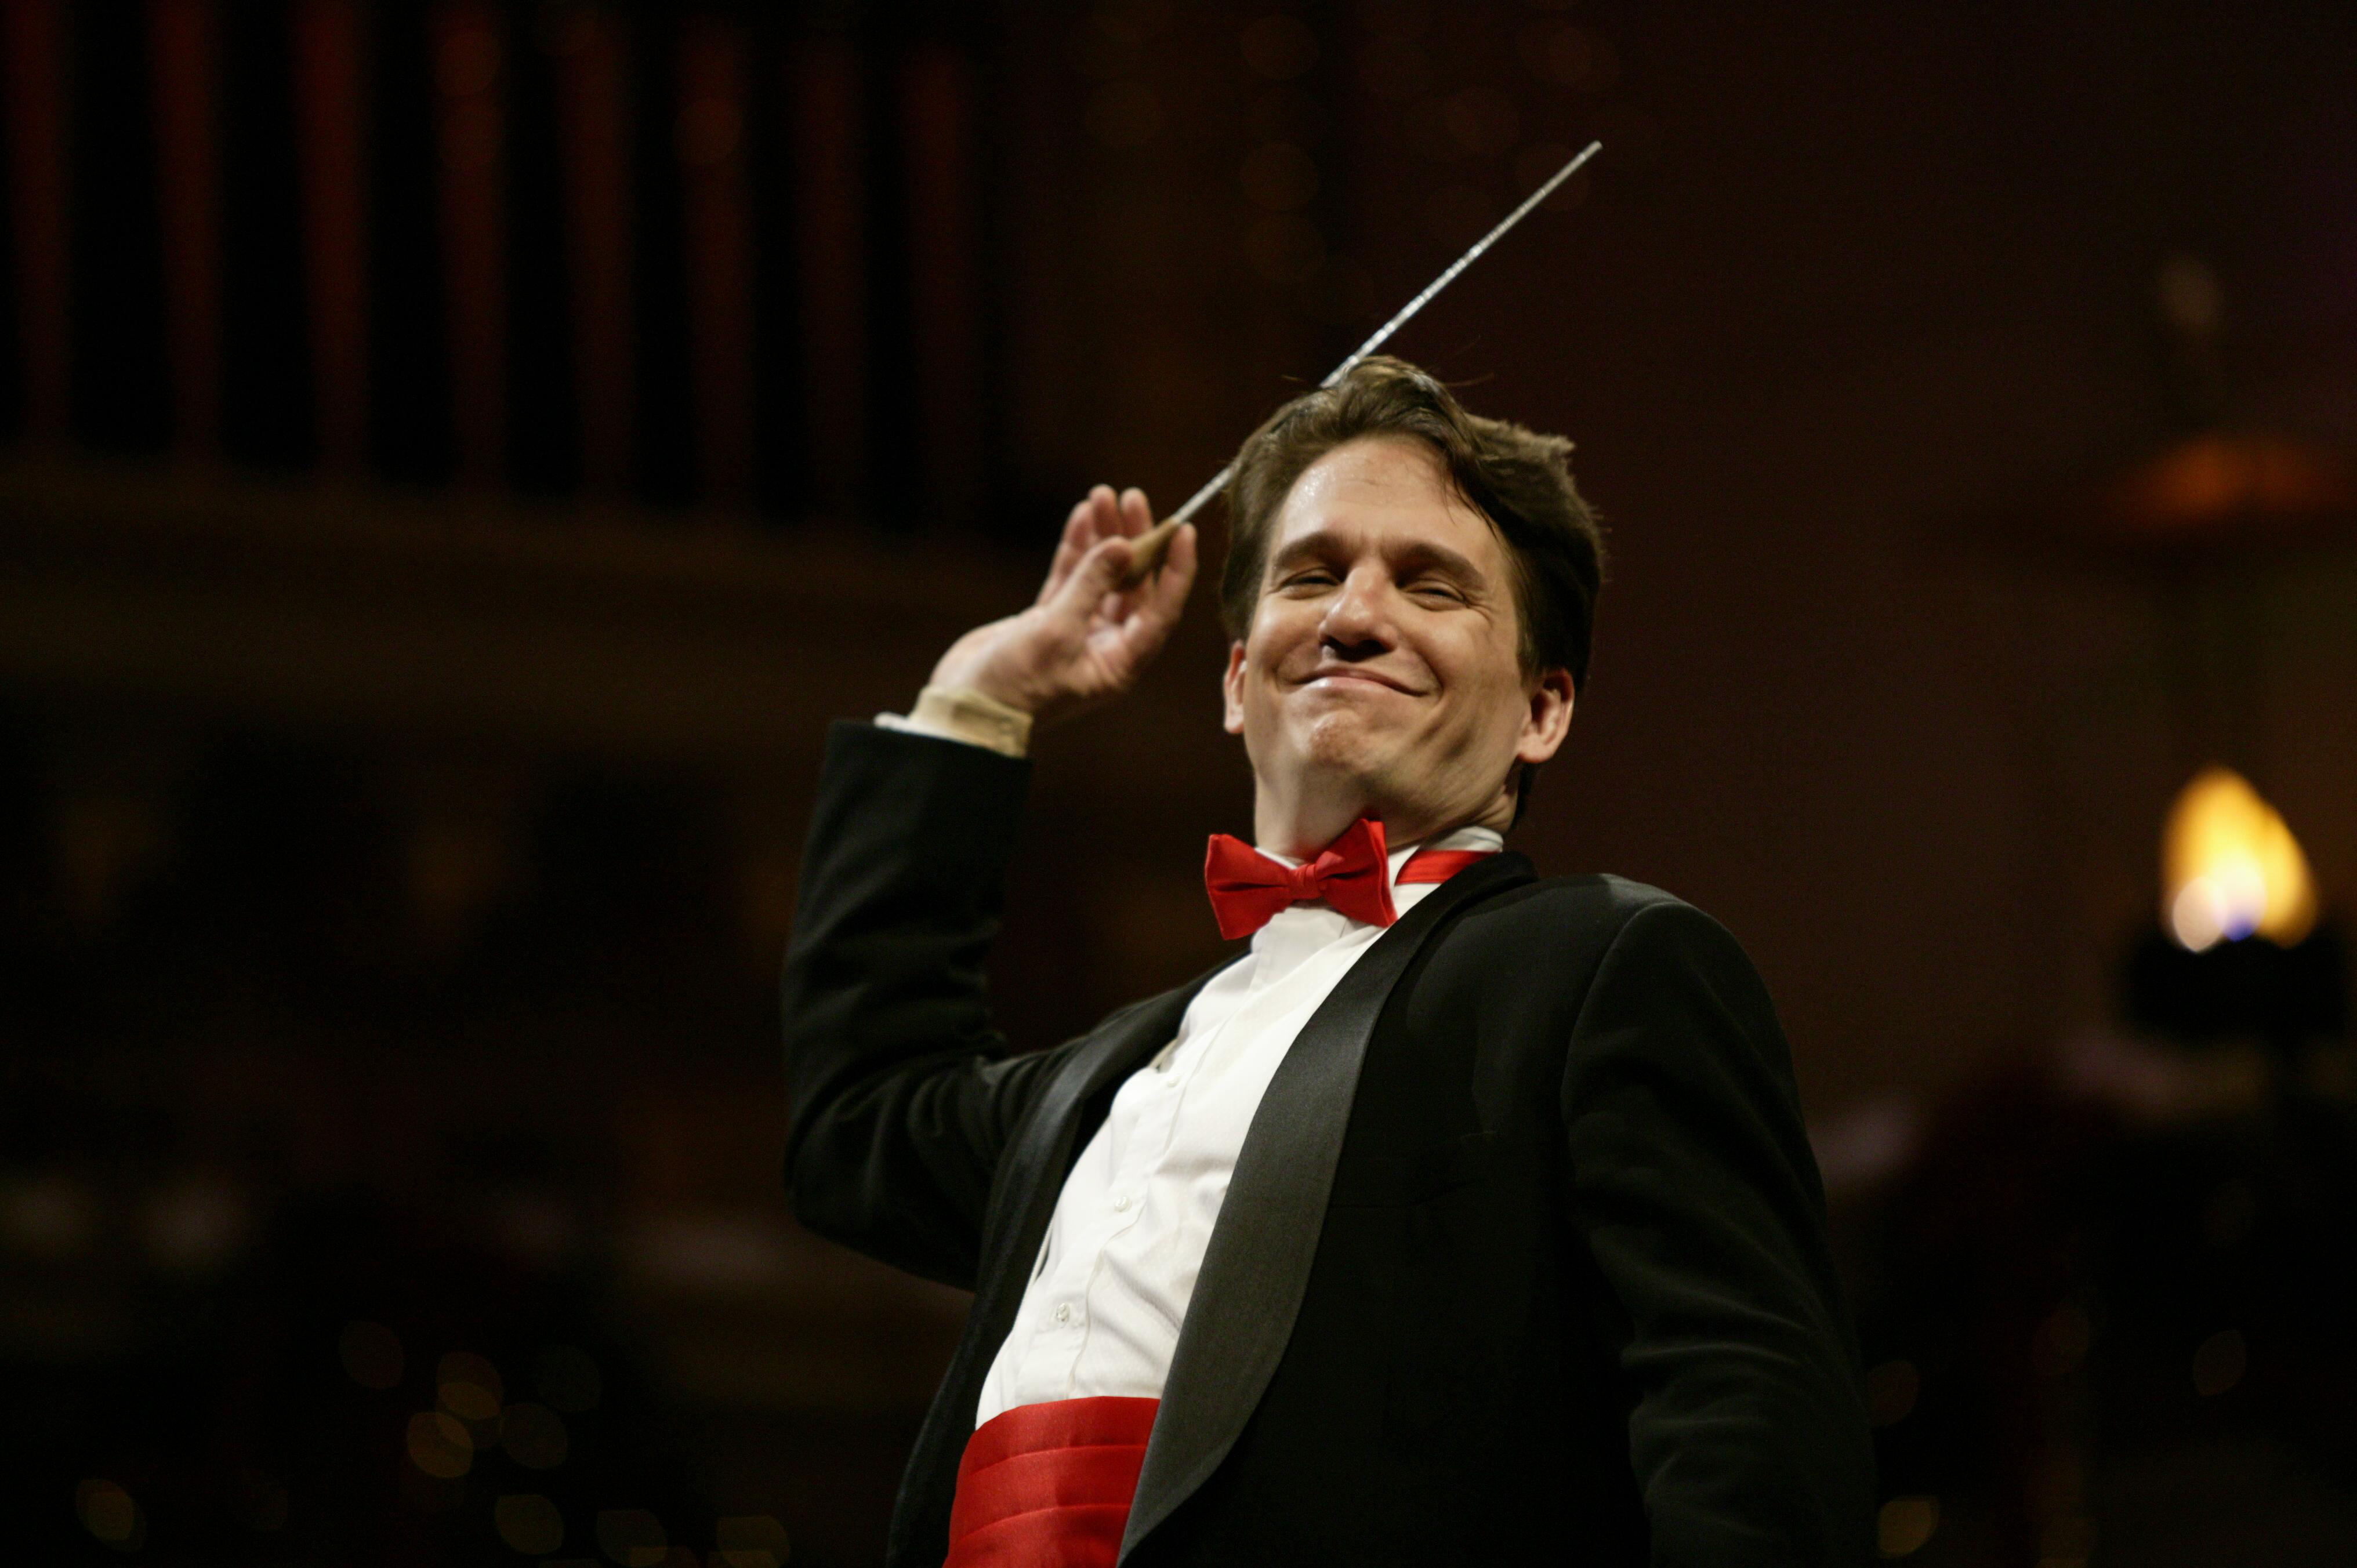 https://www.berkshirelinks.com/berkshires-news/wp-content/uploads/2009/12/Keith-Lockhart-conducts-the-Boston-Pops-12.03-Michael-Lutch1.jpg